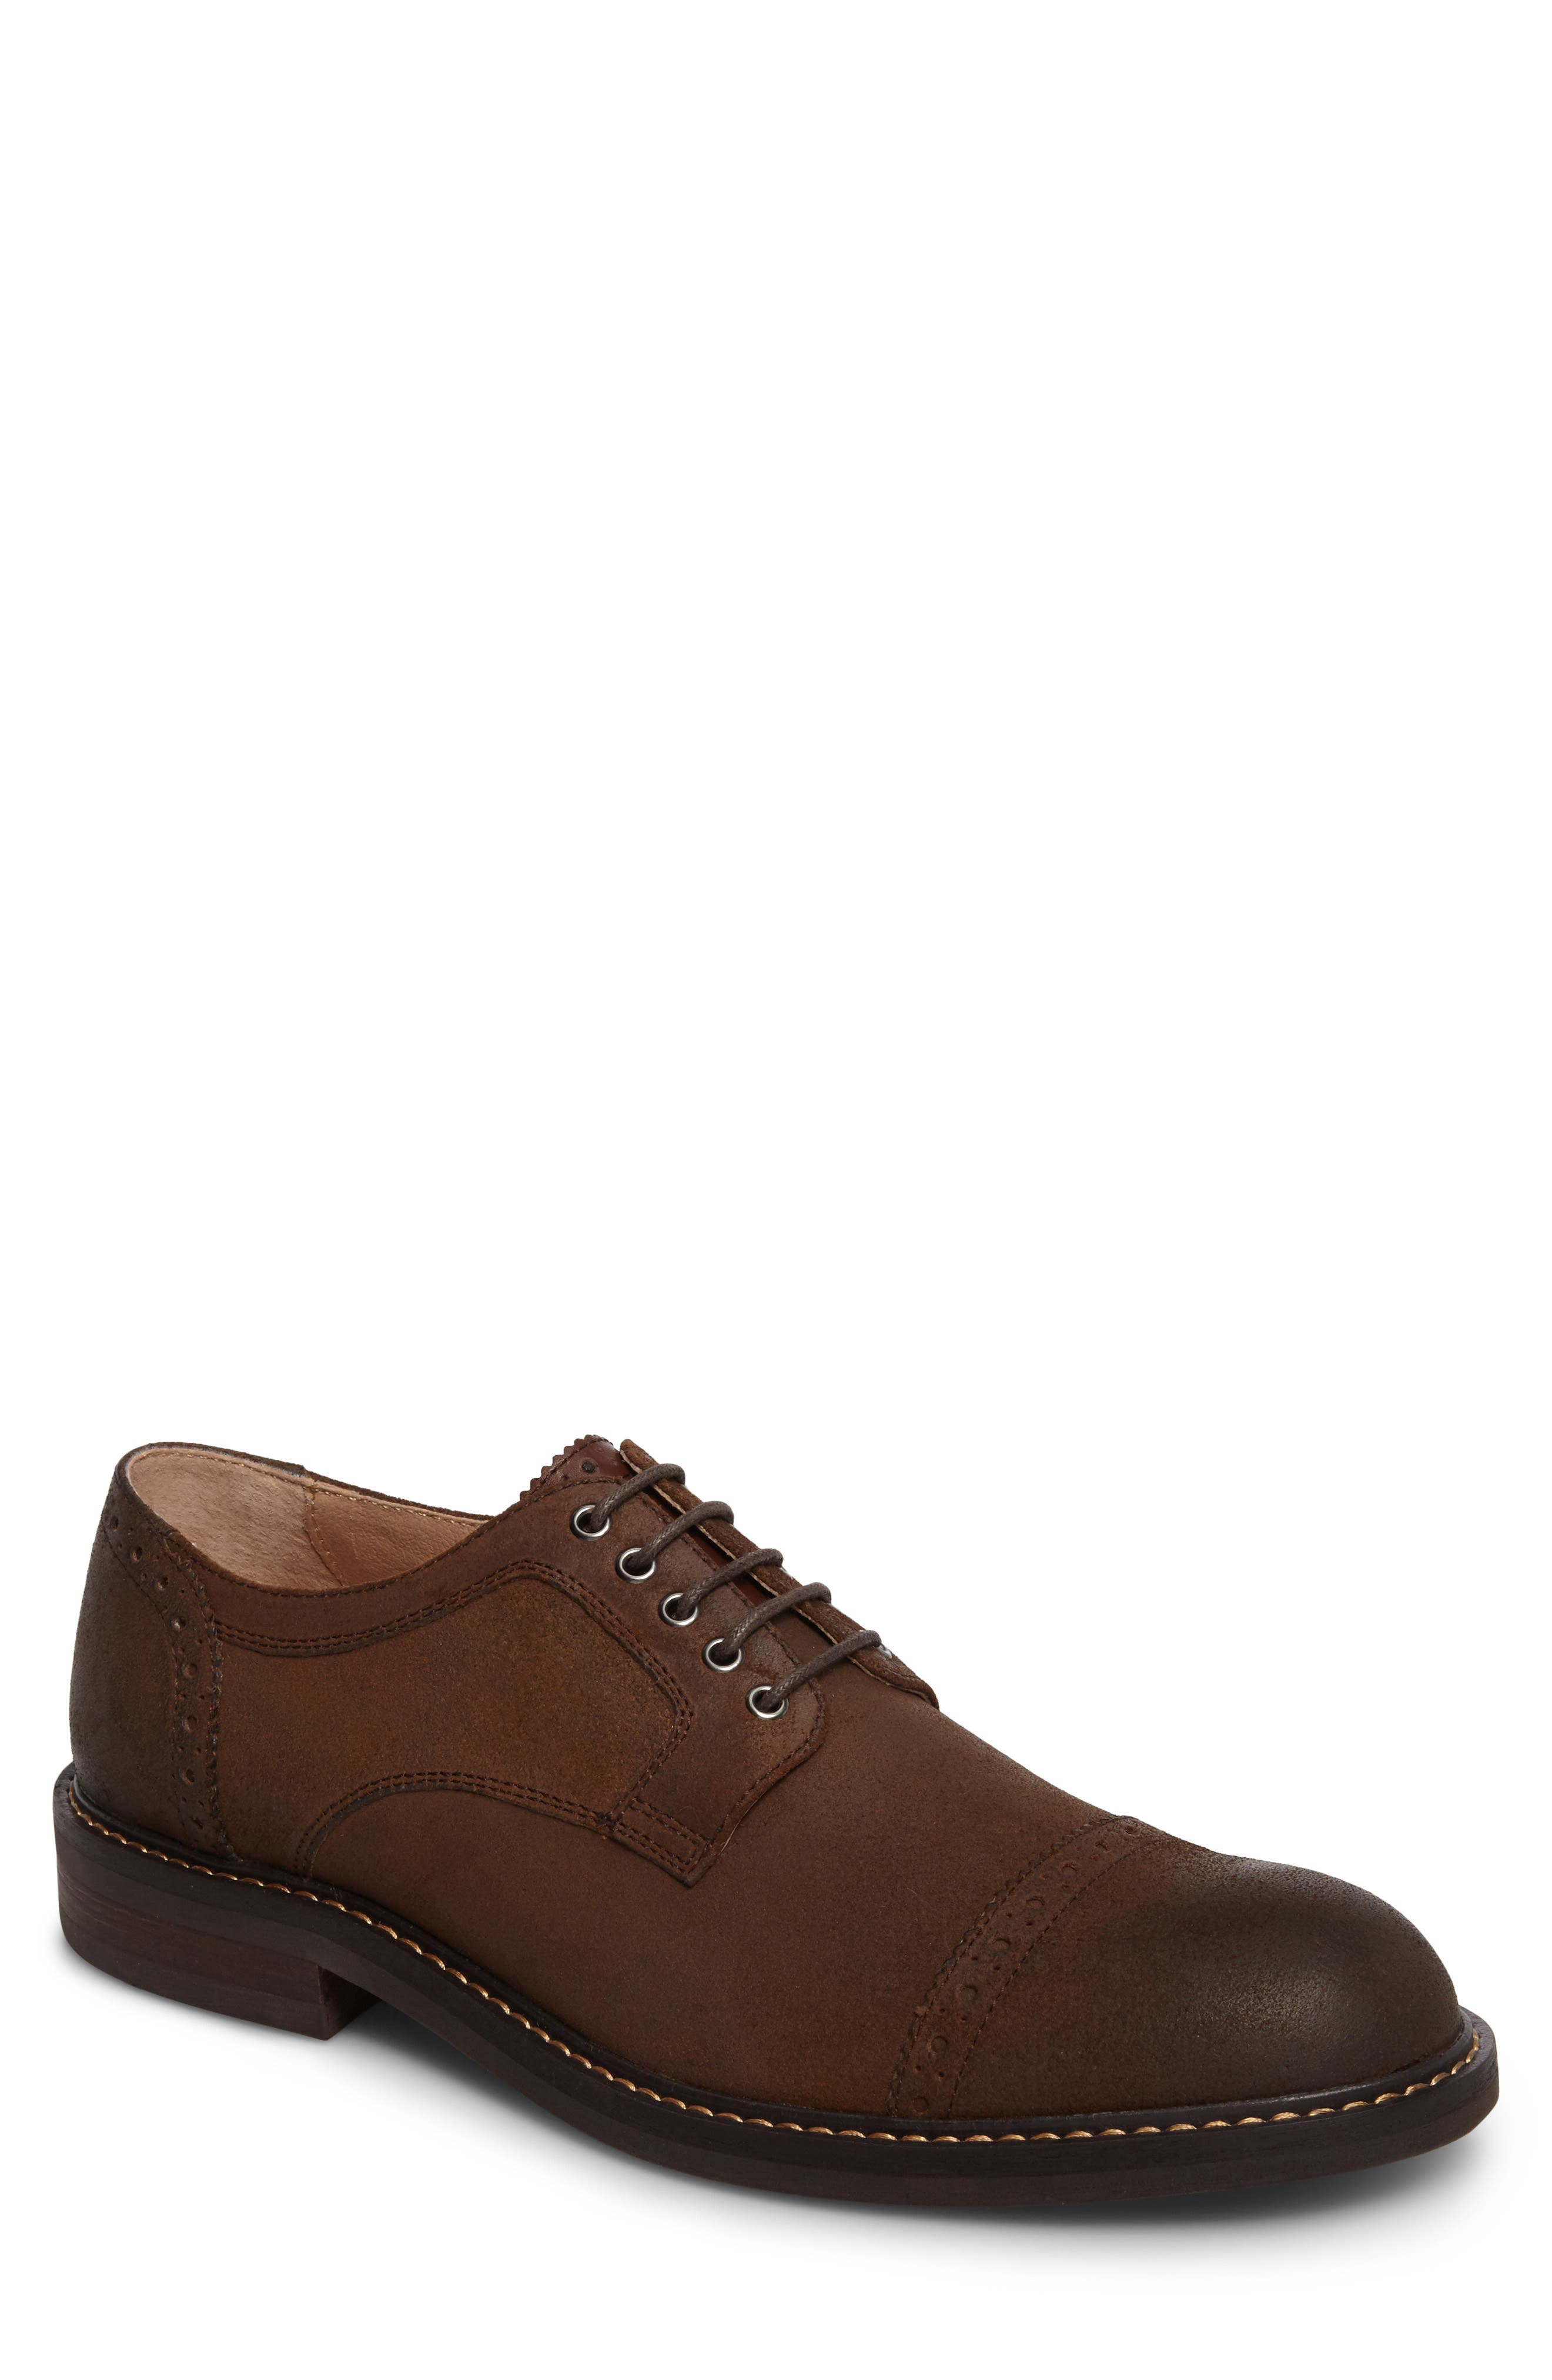 Wakefield Cap Toe Derby,                             Main thumbnail 1, color,                             Brown Rustic Suede